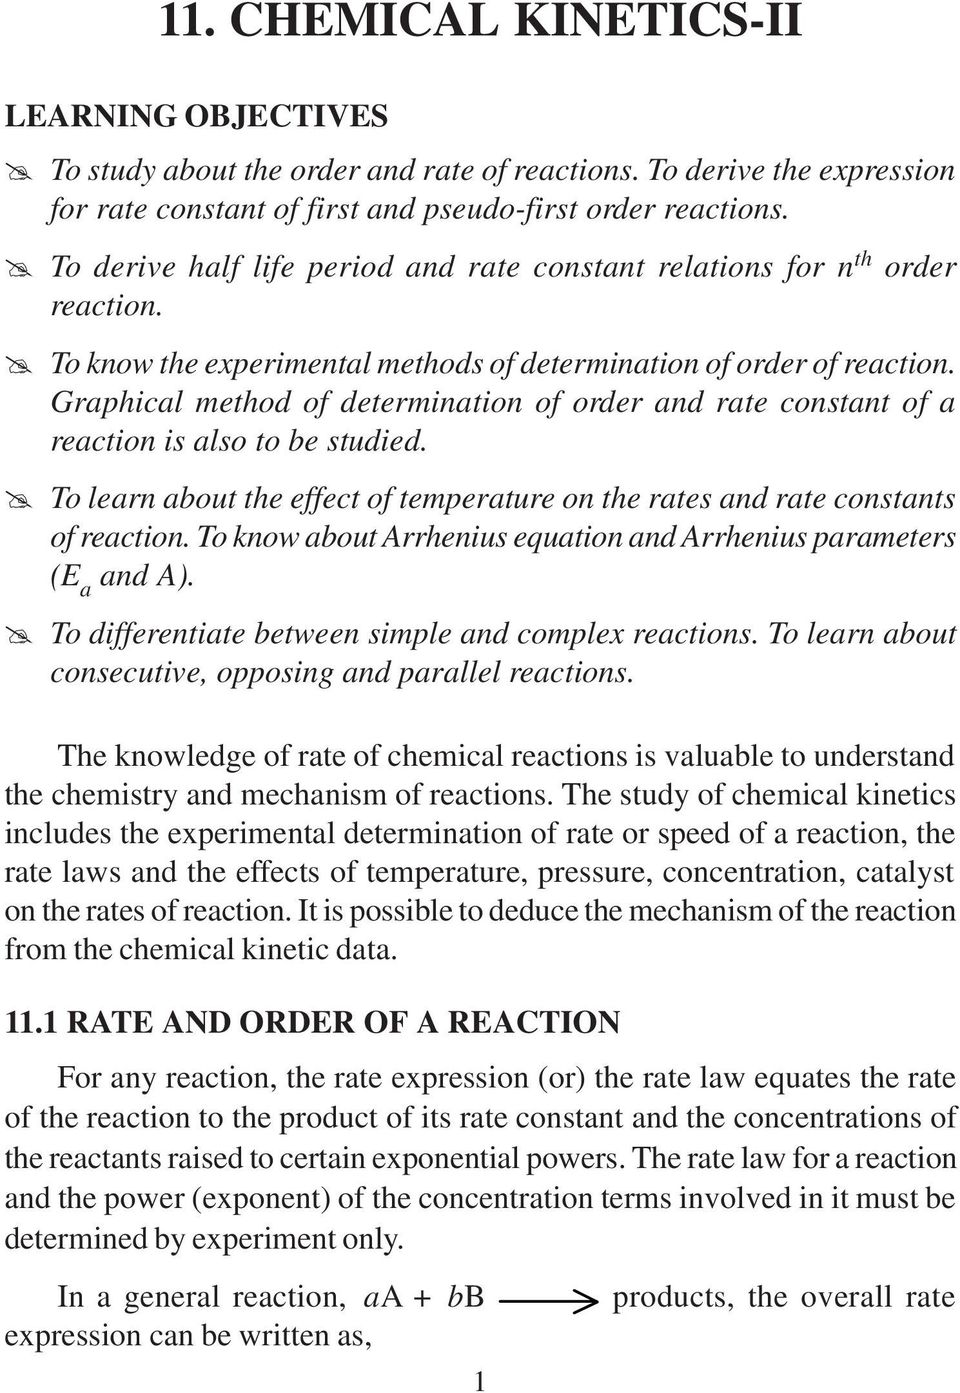 Graphical method of determination of order and rate constant of a reaction is also to be studied. @ To learn about the effect of temperature on the rates and rate constants of reaction.